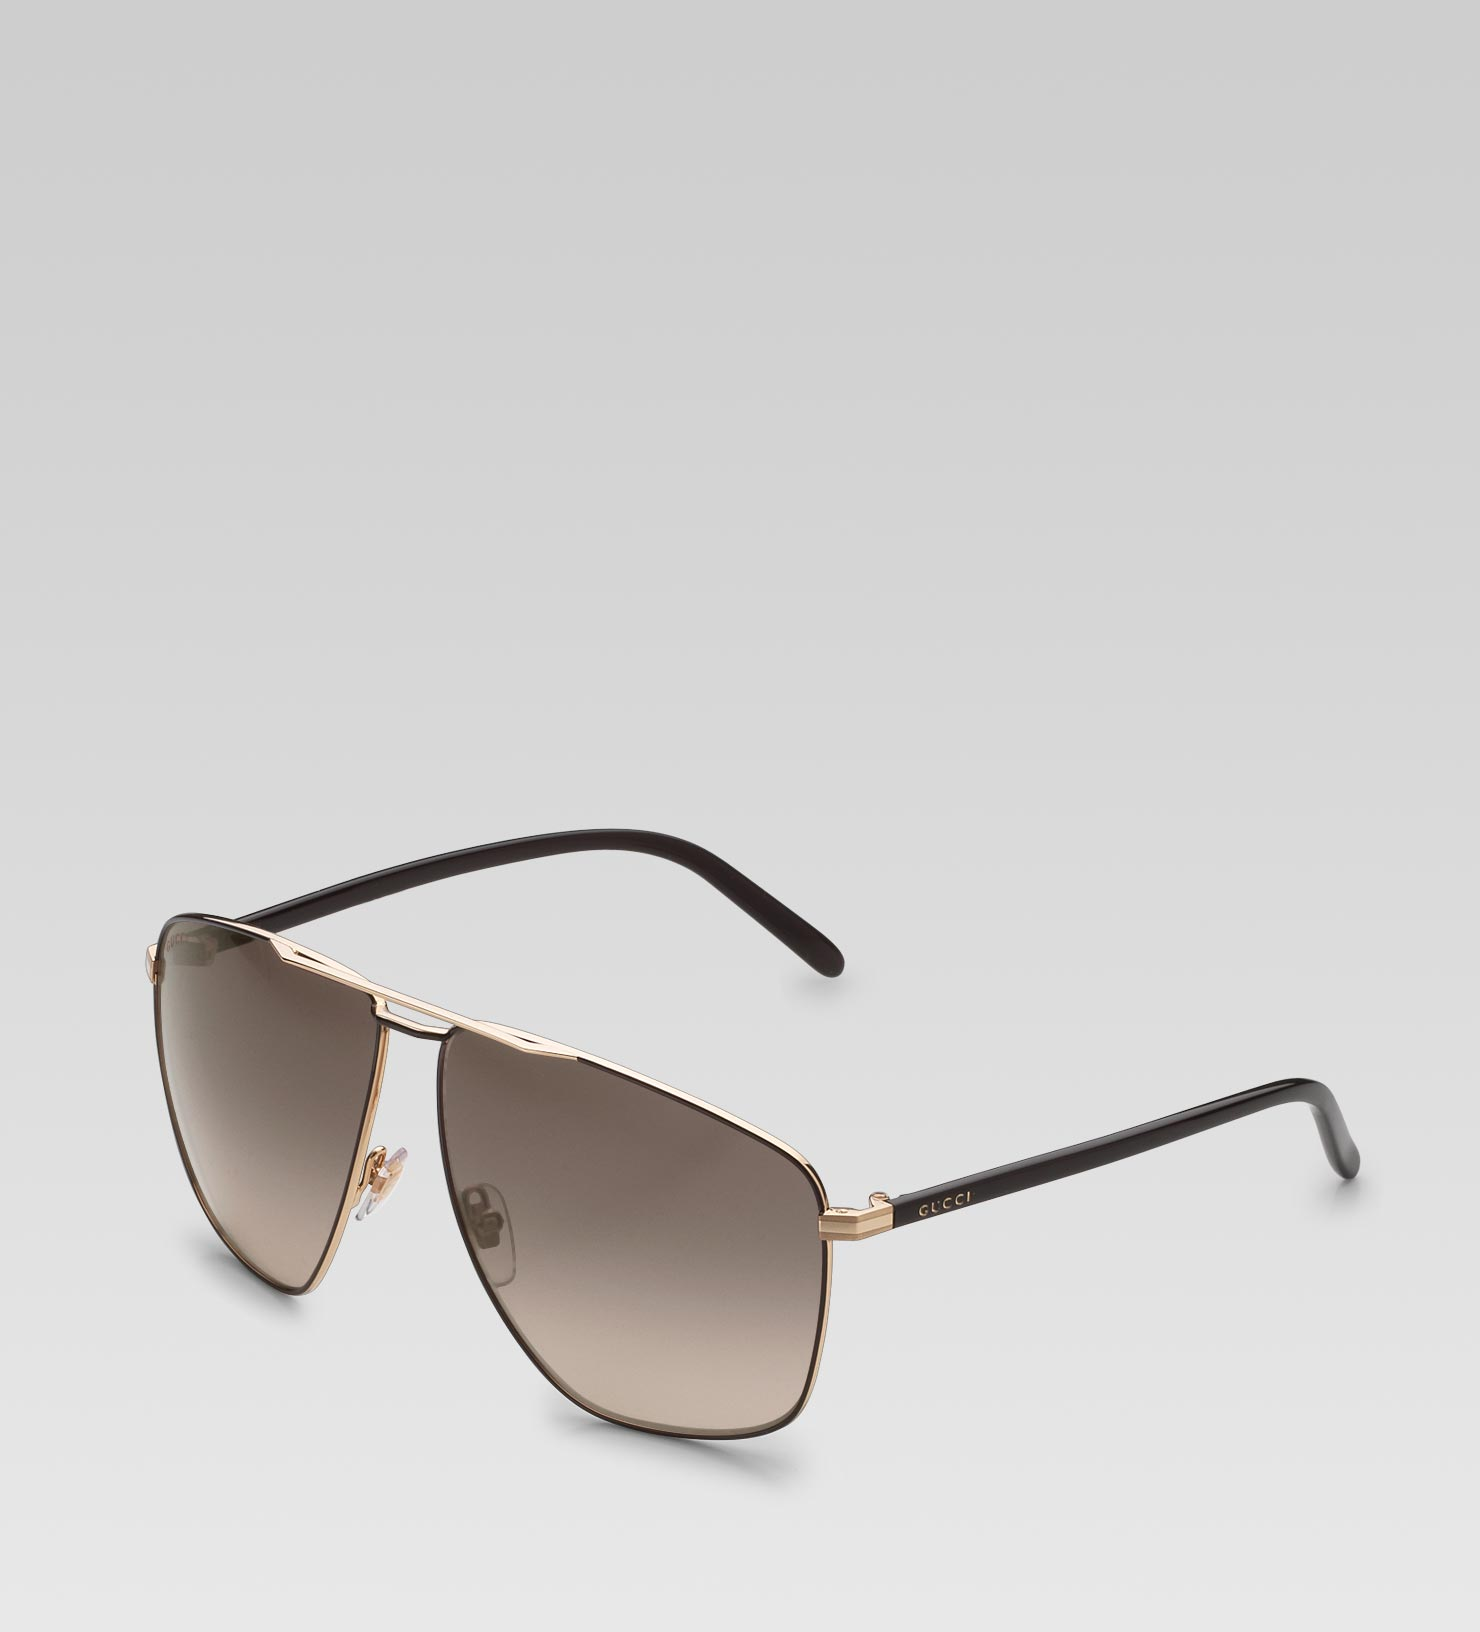 96810893f92 Lyst - Gucci Medium Rectangle Frame Sunglasses with Gucci Logo On ...